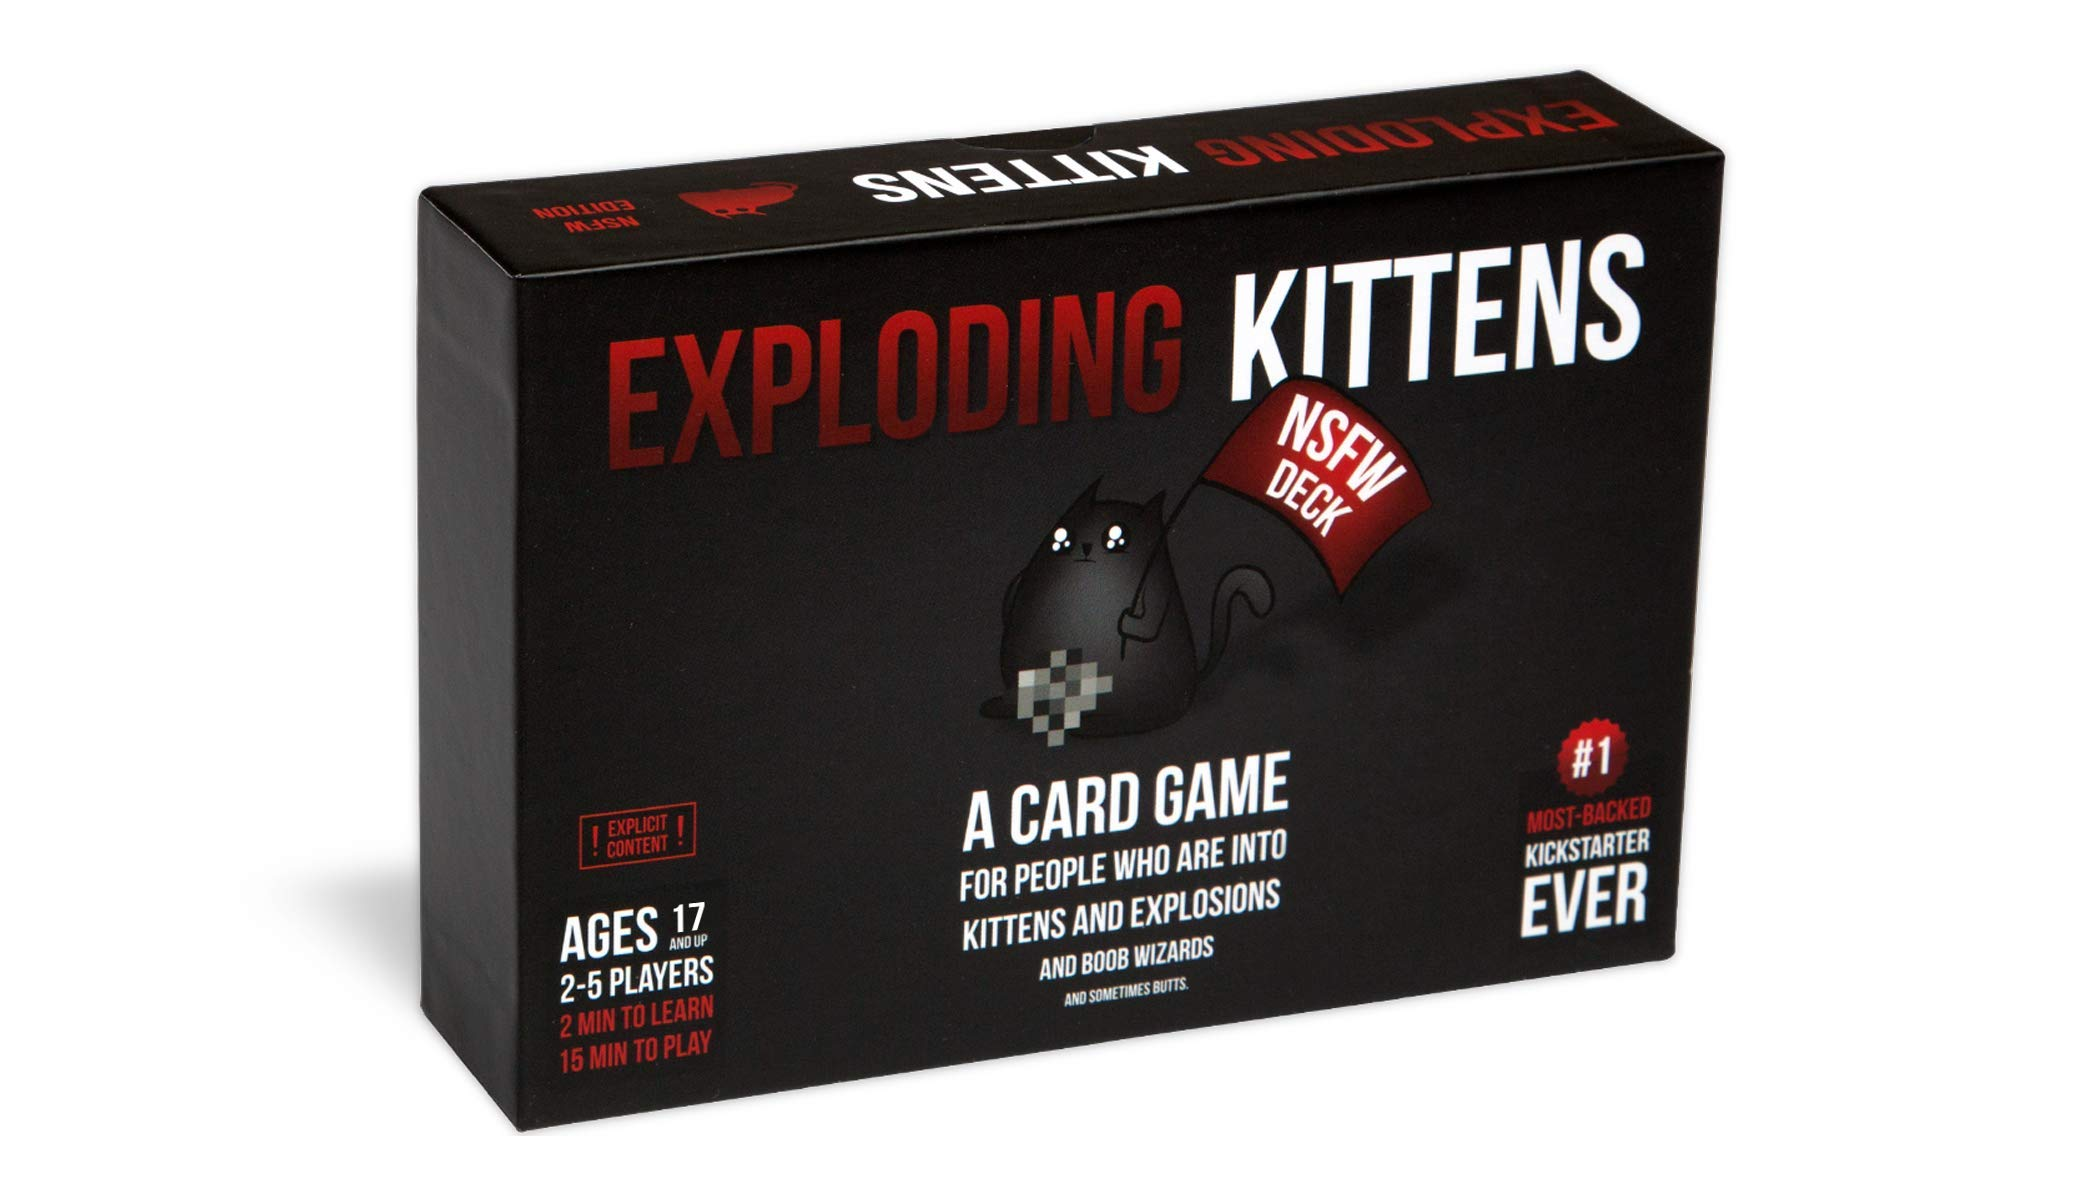 Exploding Kittens Card Game - Nsfw (Explicit Adult Content) Edition - Family-Friendly Party Games - Card Games for Adults, Teens and Kids